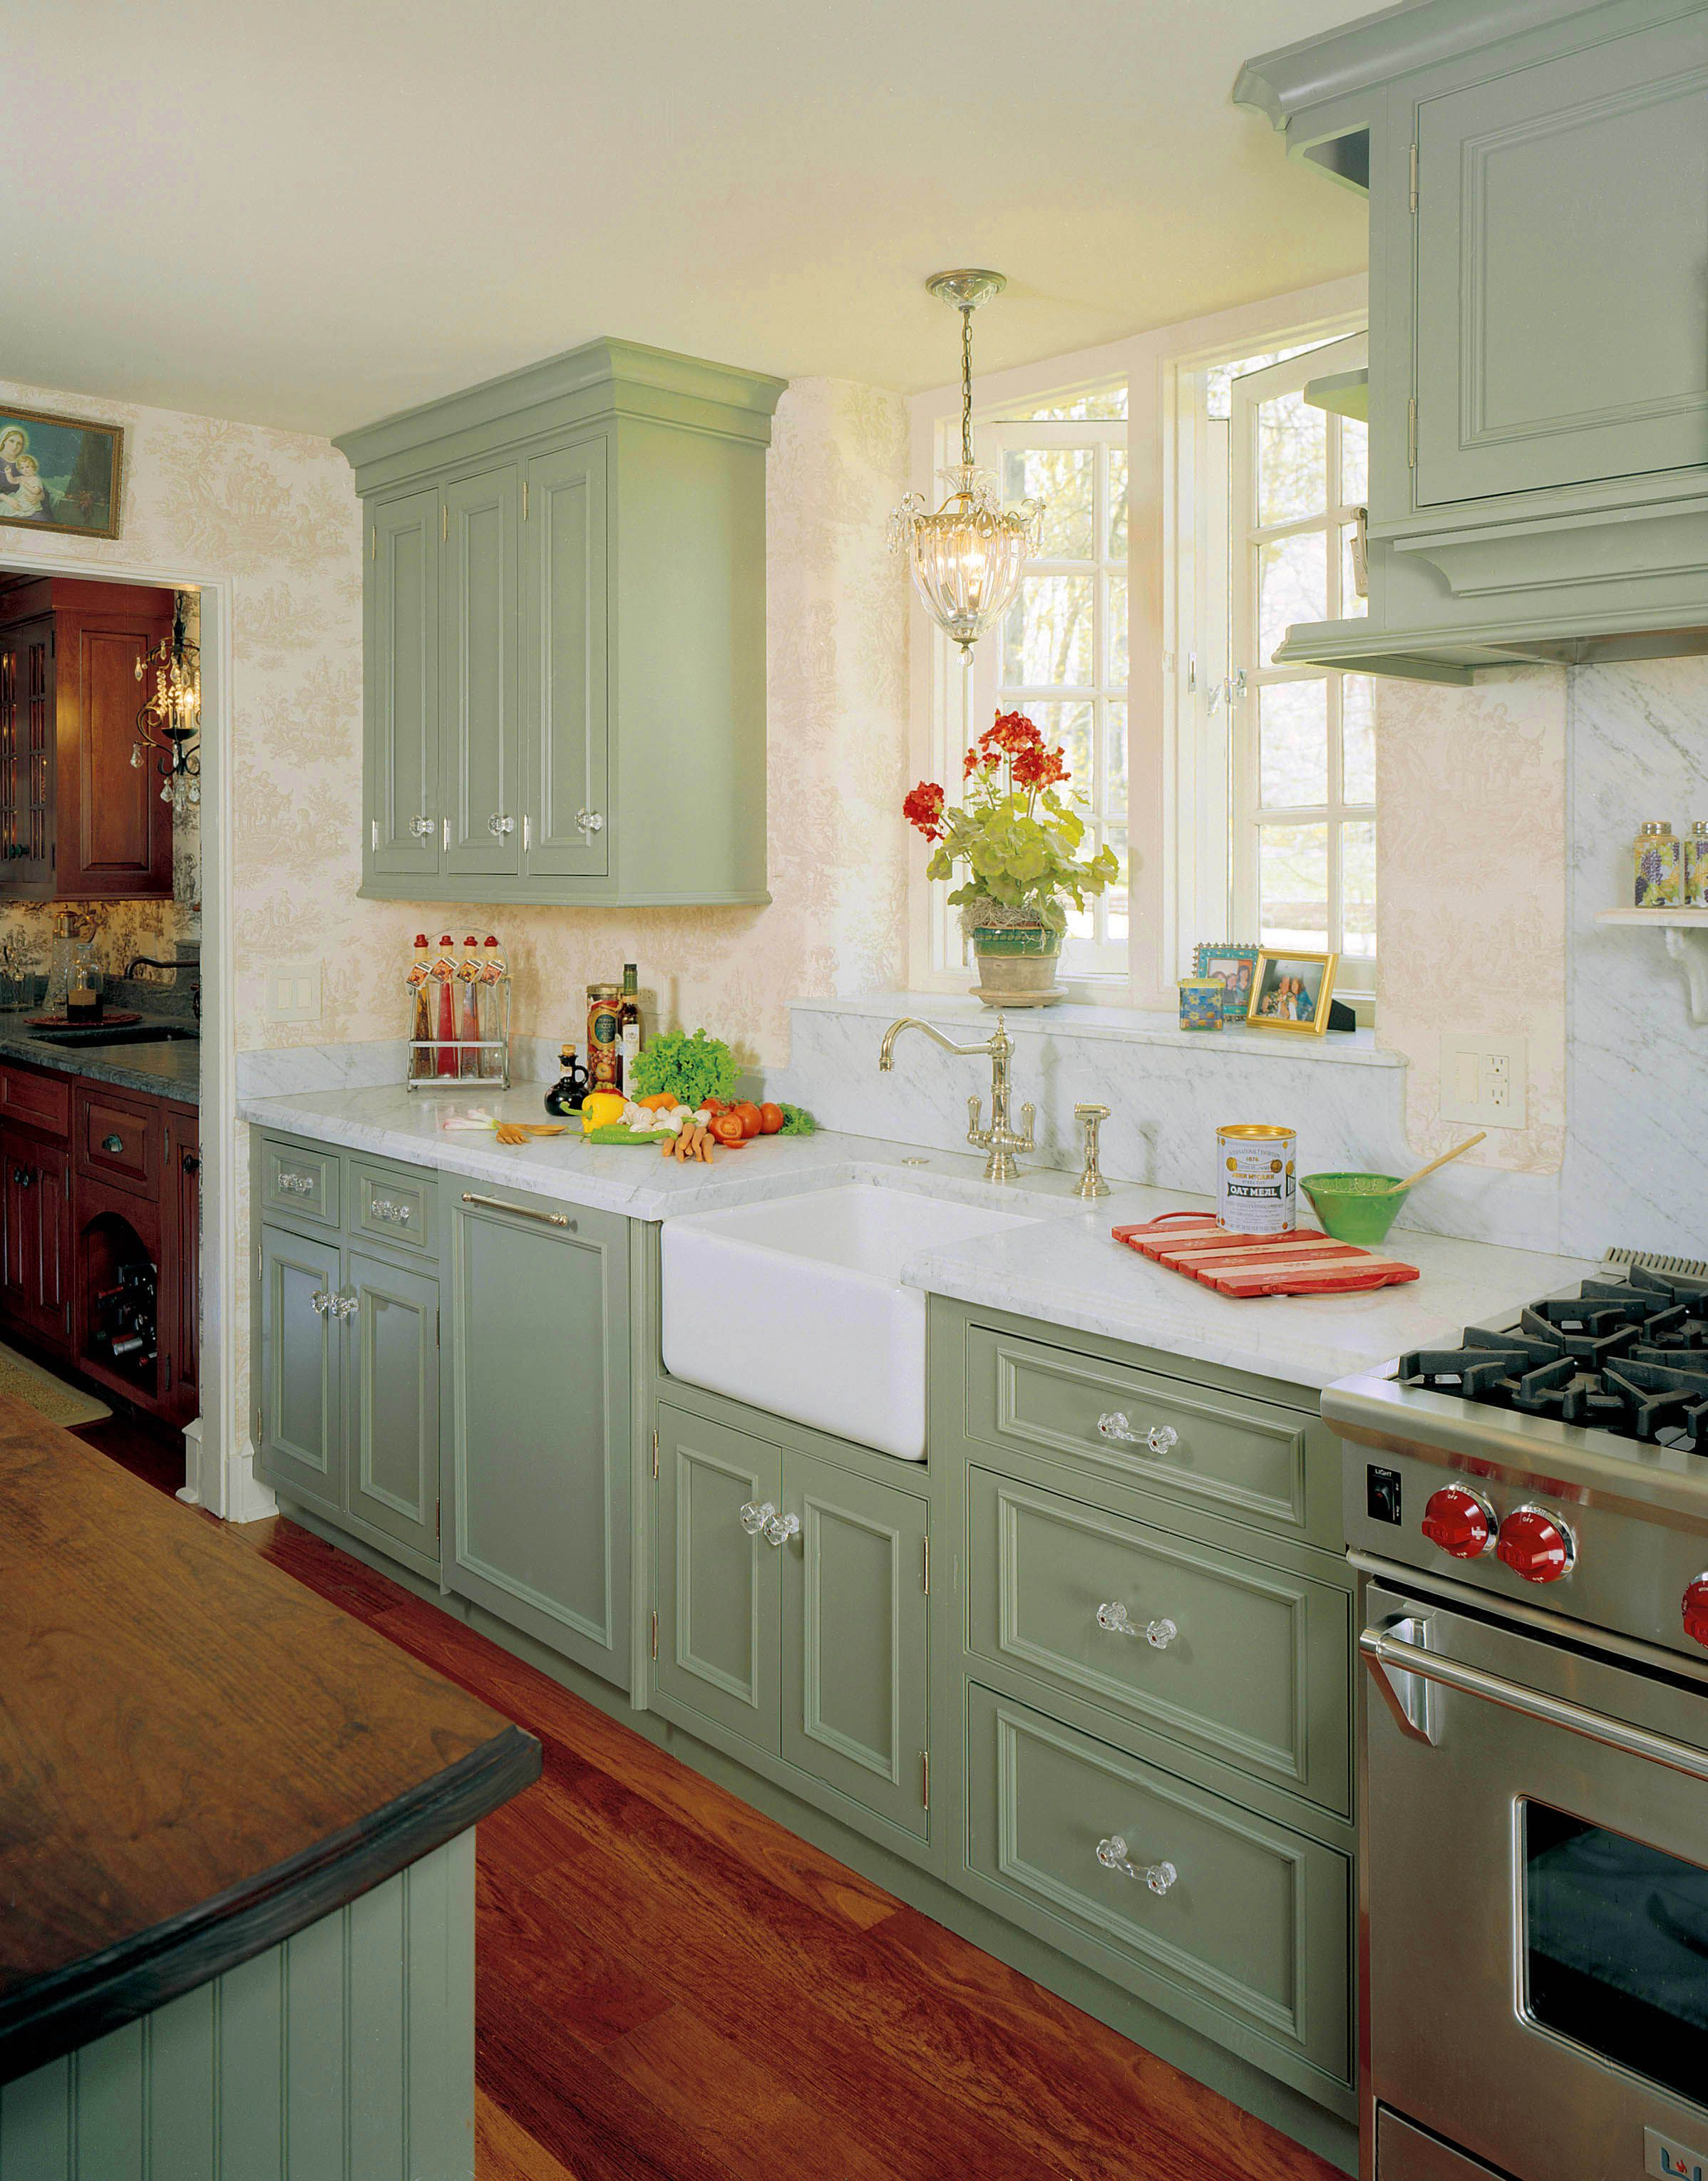 English Country Kitchen Redesign Villanova Pa Cottage Kitchen Cabinets Cottage Kitchen Design English Country Kitchens